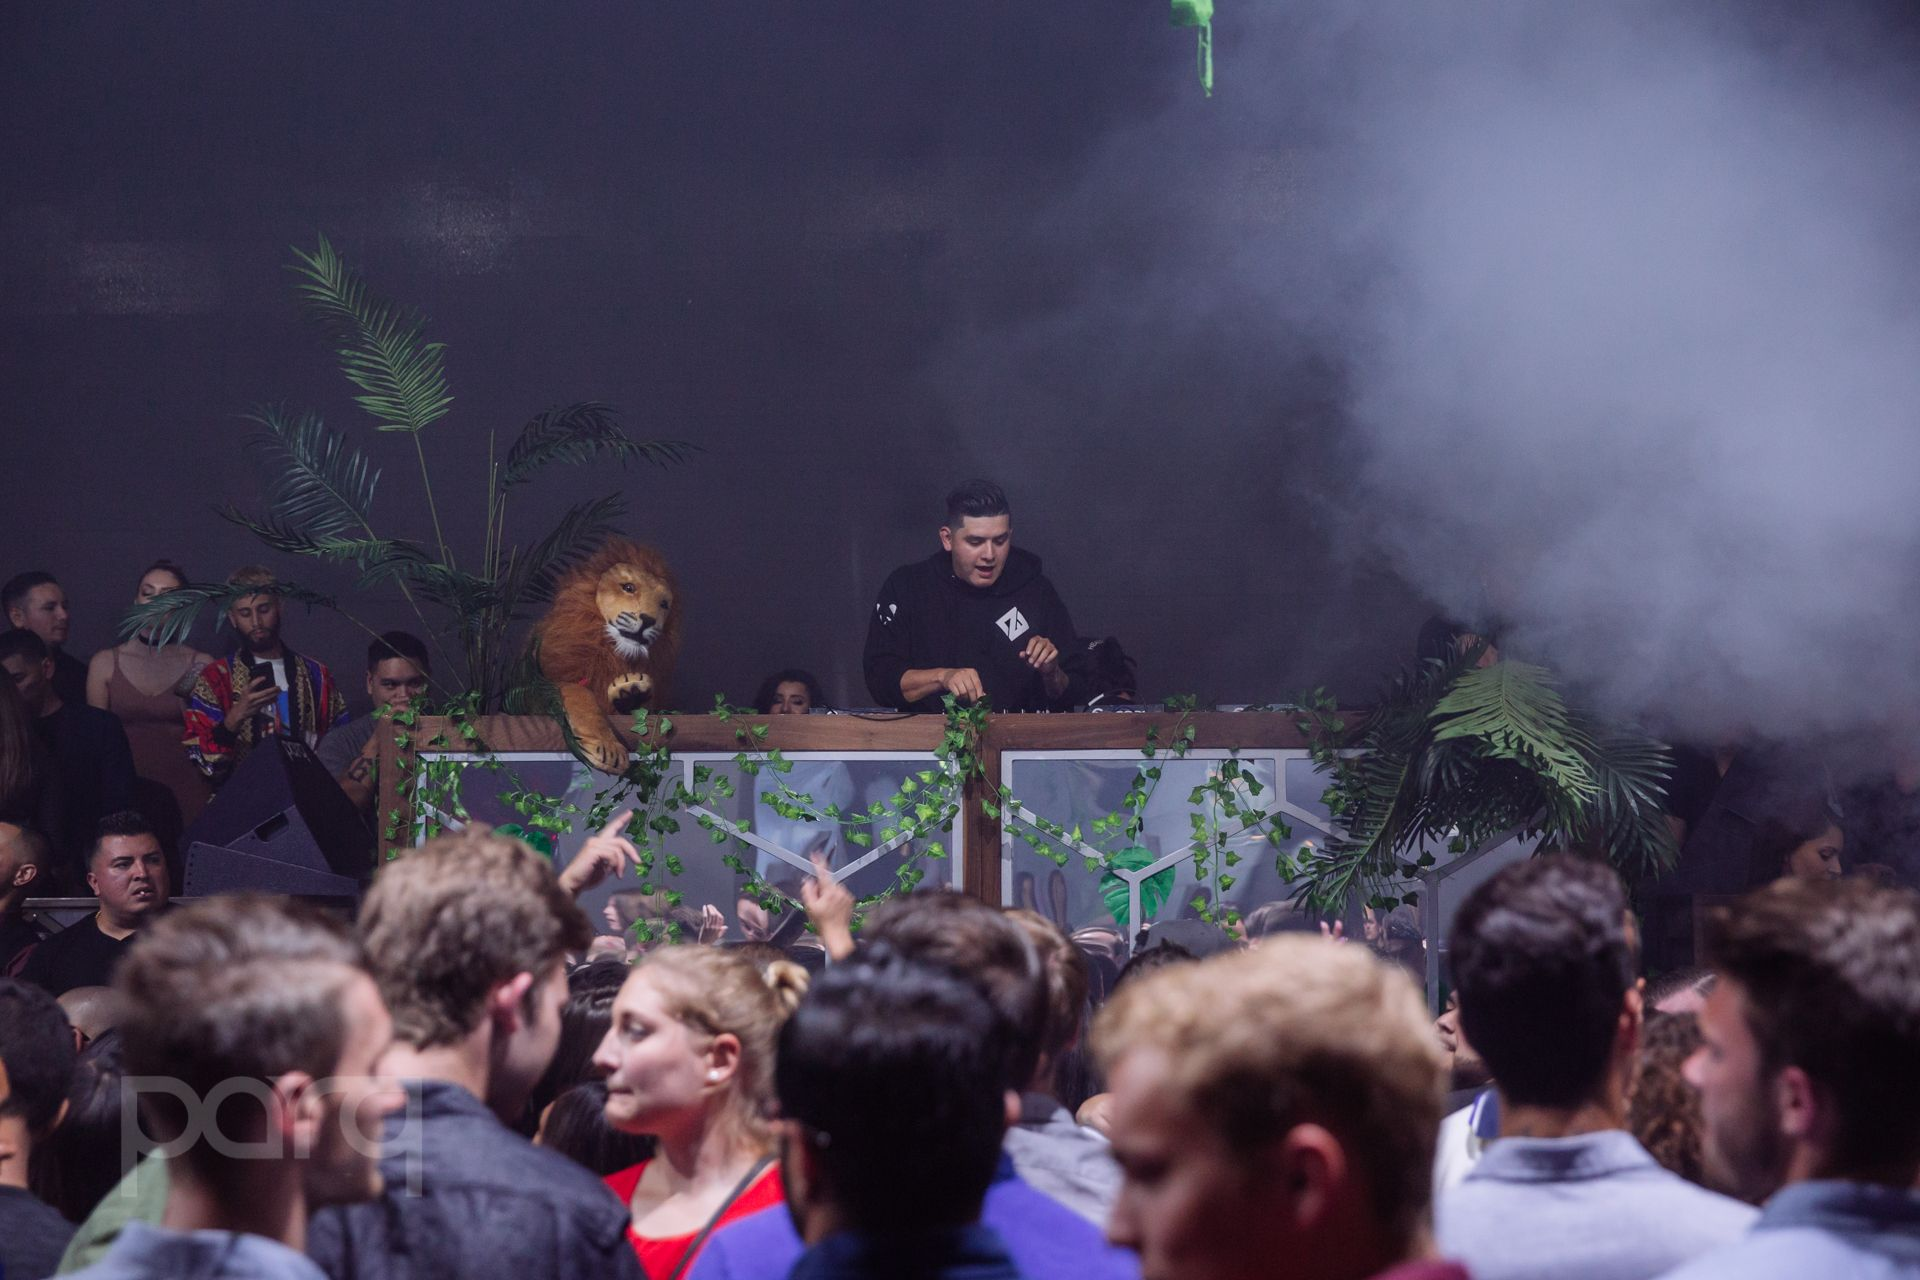 04.22.17 Zoo Funktion-36.jpg